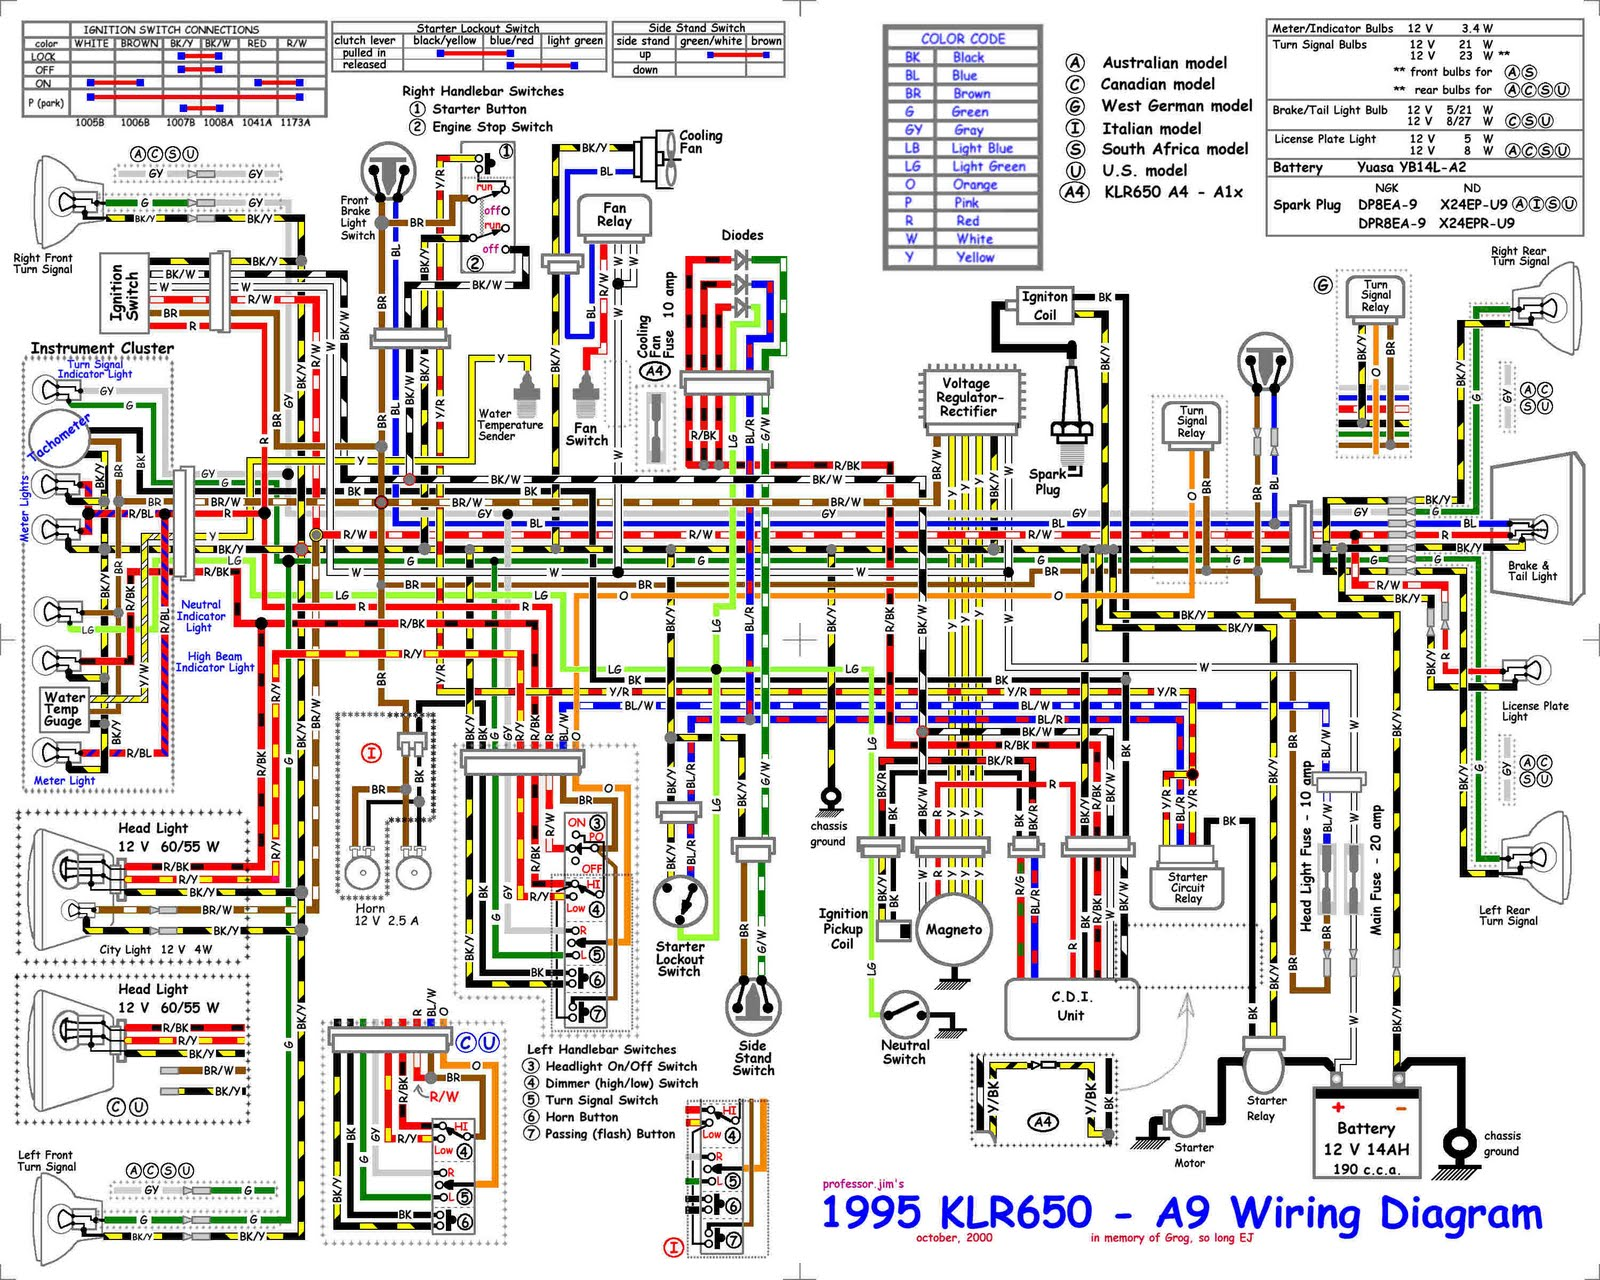 86 monte carlo wiring harness - wiring diagram heat-ware -  heat-ware.cinemamanzonicasarano.it  cinemamanzonicasarano.it